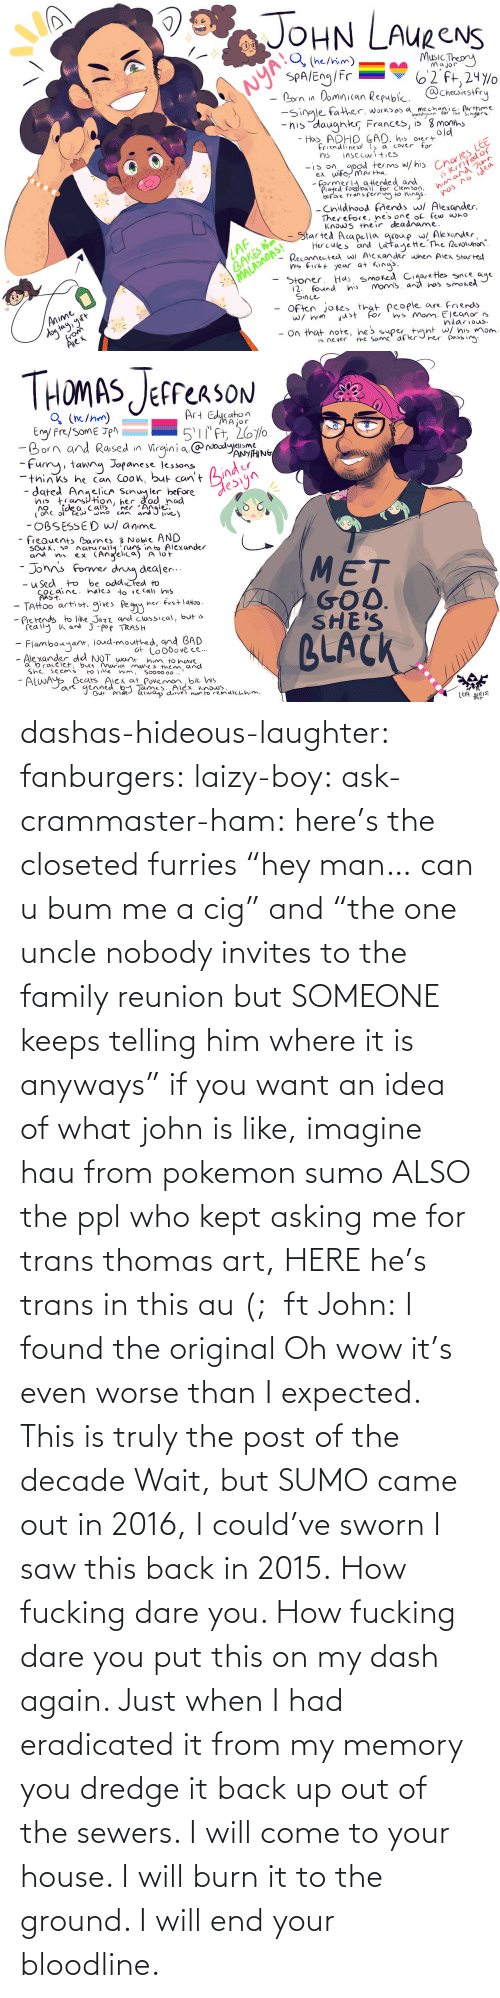 "Sworn: dashas-hideous-laughter:  fanburgers:   laizy-boy:   ask-crammaster-ham:   here's the closeted furries ""hey man… can u bum me a cig"" and ""the one uncle nobody invites to the family reunion but SOMEONE keeps telling him where it is anyways""   if you want an idea of what john is like, imagine hau from pokemon sumo ALSO the ppl who kept asking me for trans thomas art, HERE he's trans in this au (;  ft John:    I found the original     Oh wow it's even worse than I expected. This is truly the post of the decade    Wait, but SUMO came out in 2016, I could've sworn I saw this back in 2015.    How fucking dare you. How fucking dare you put this on my dash again. Just when I had eradicated it from my memory you dredge it back up out of the sewers. I will come to your house. I will burn it to the ground. I will end your bloodline."